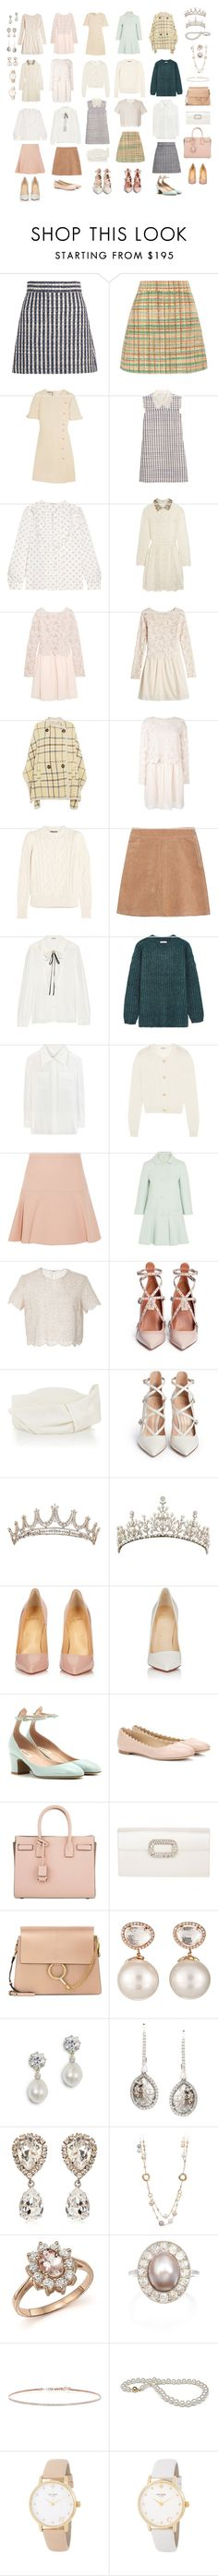 """Untitled #3024"" by lespybook ❤ liked on Polyvore featuring Miu Miu, Gucci, Valentino, See by Chloé, Isabel Marant, Chloé, RED Valentino, Costarellos, Cappellino Millinery and Gianvito Rossi"